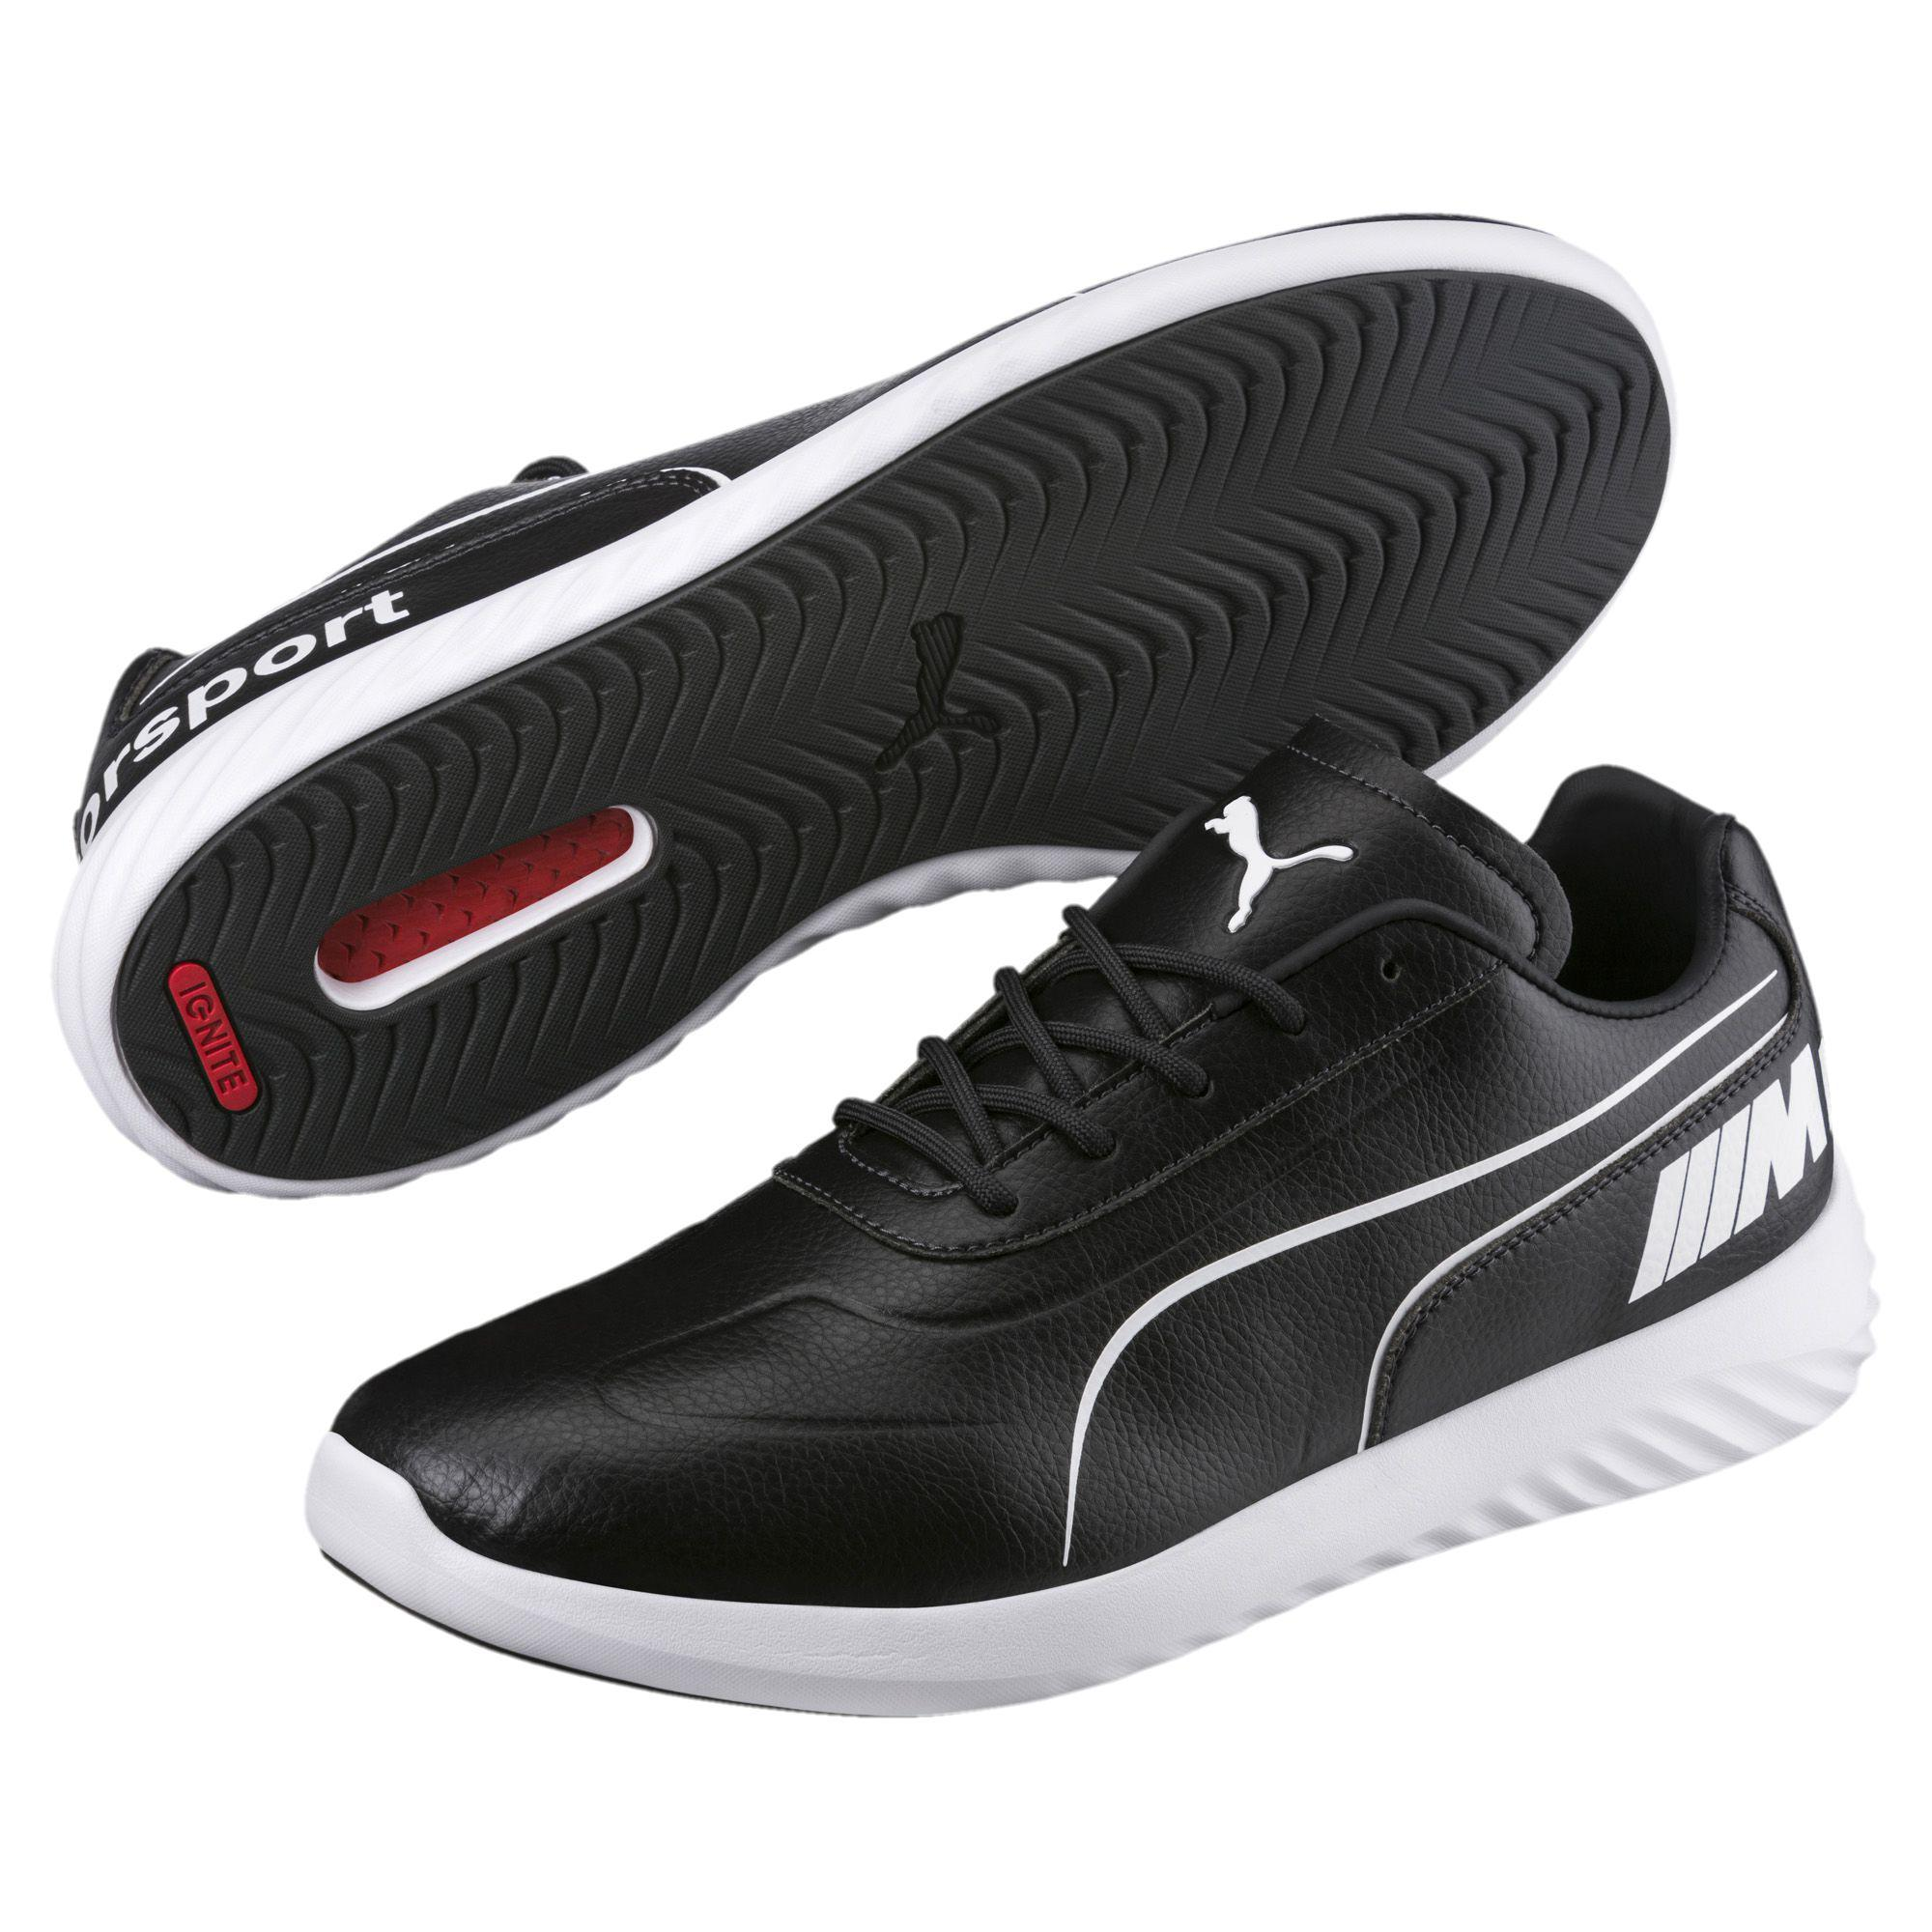 f778f8fd387 PUMA - Multicolor Bmw M Motorsport Speedcat Evo Synth Sneakers for Men -  Lyst. View fullscreen